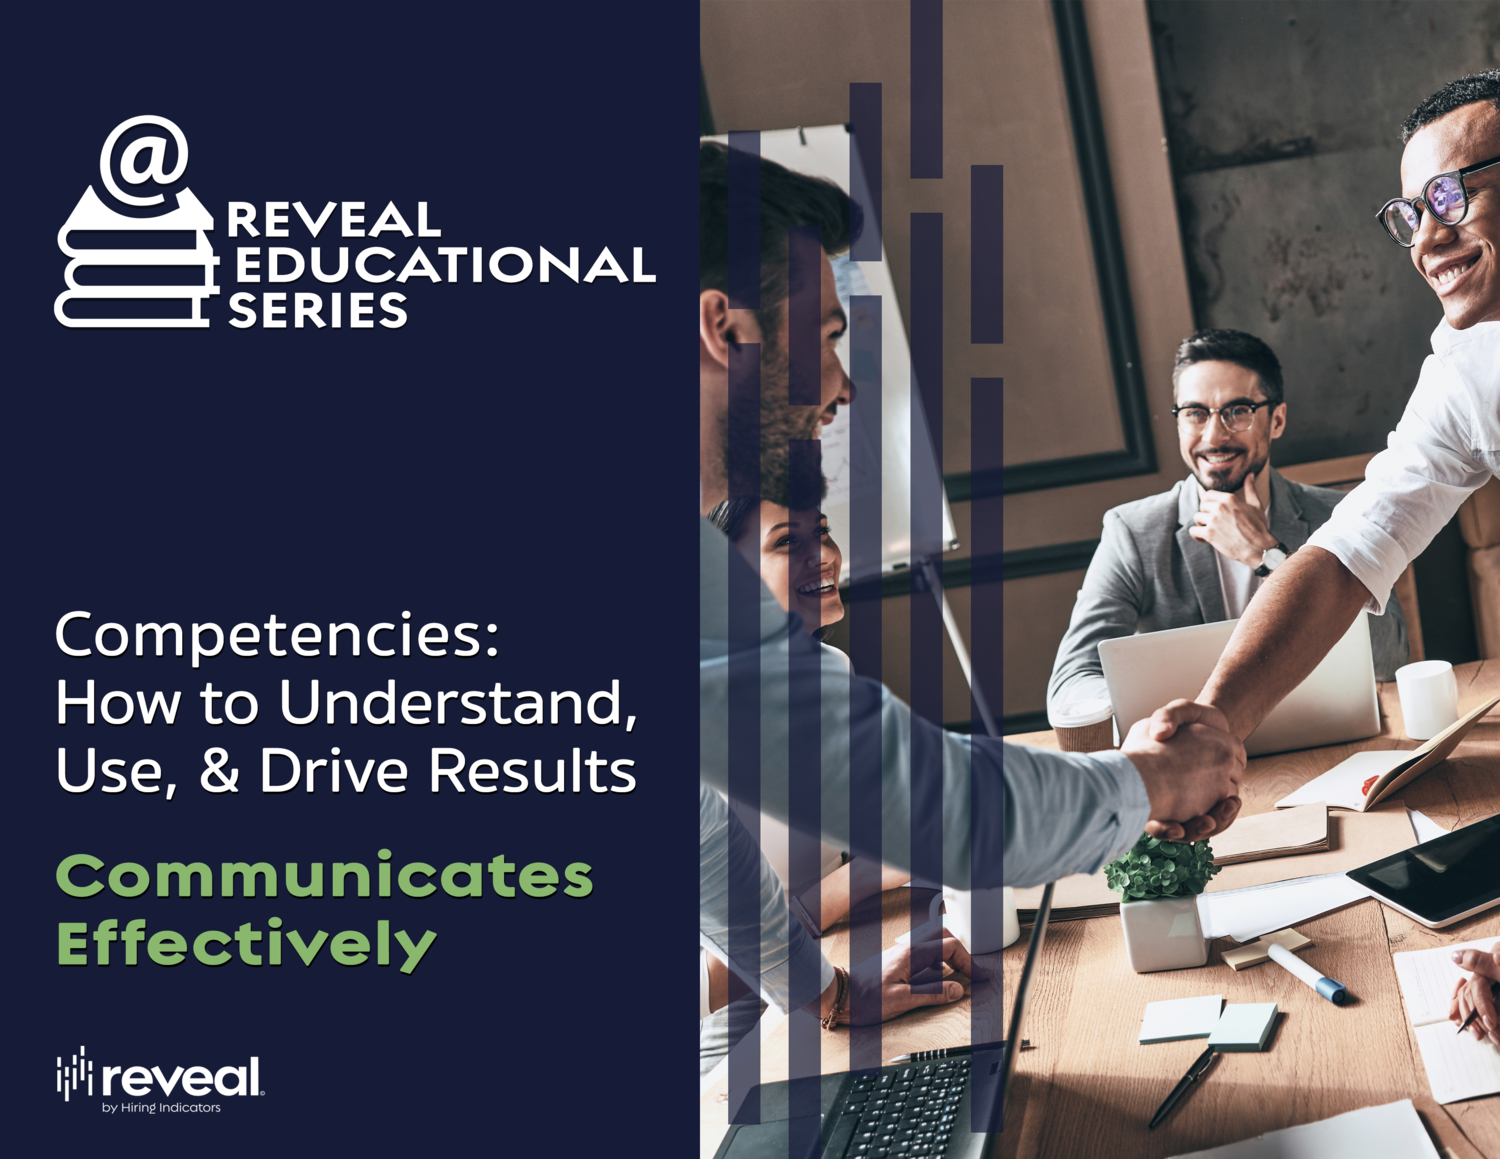 Reveal Educational Series, Communicated Effectively